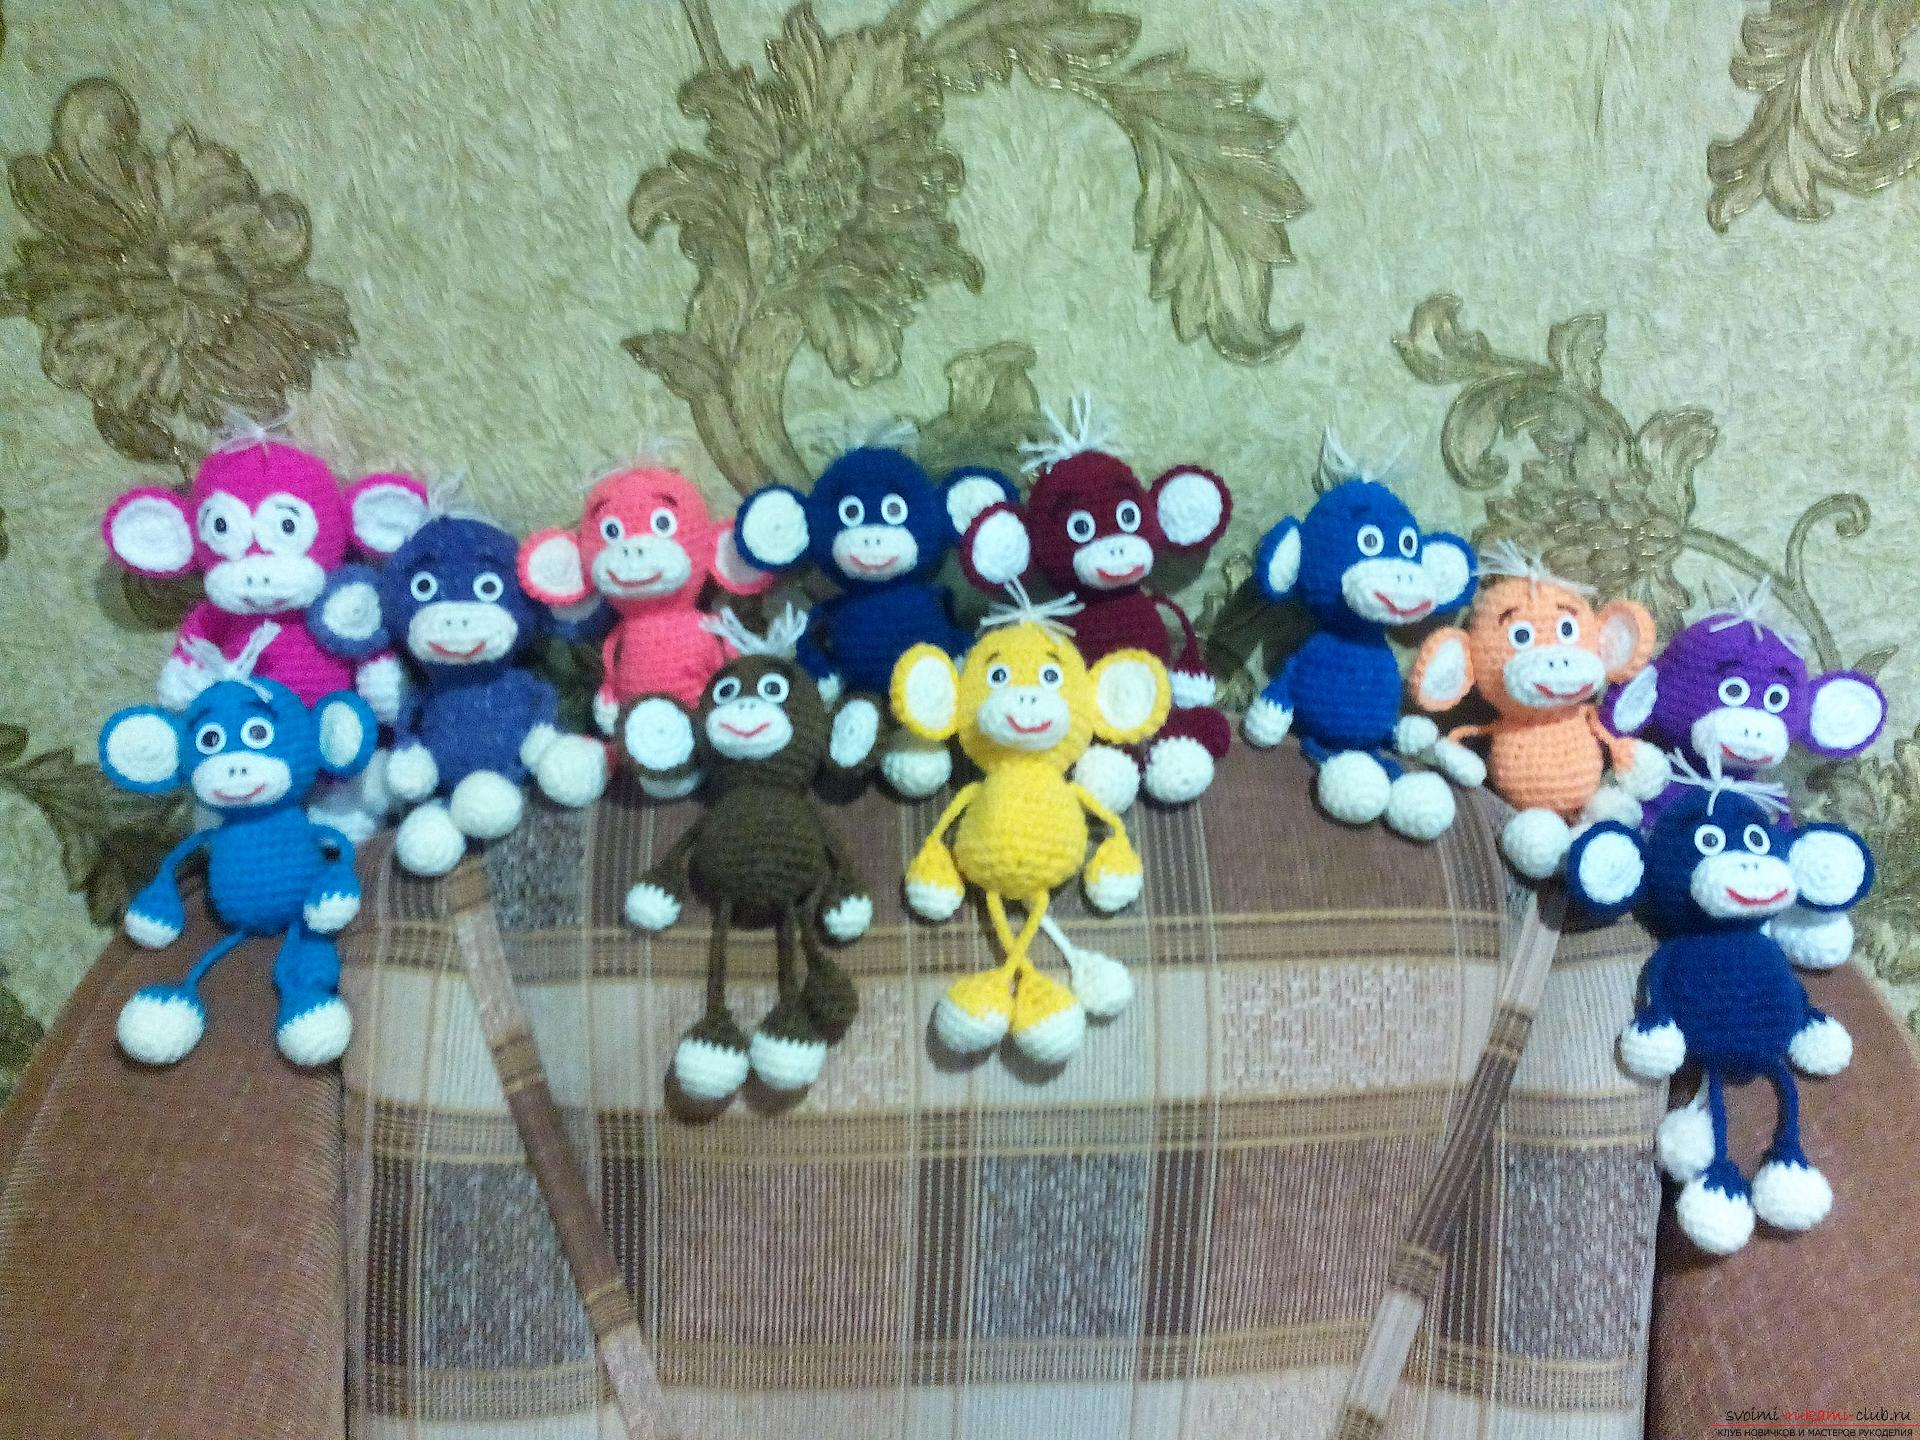 Funny monkeys, crocheted. Photo # 2